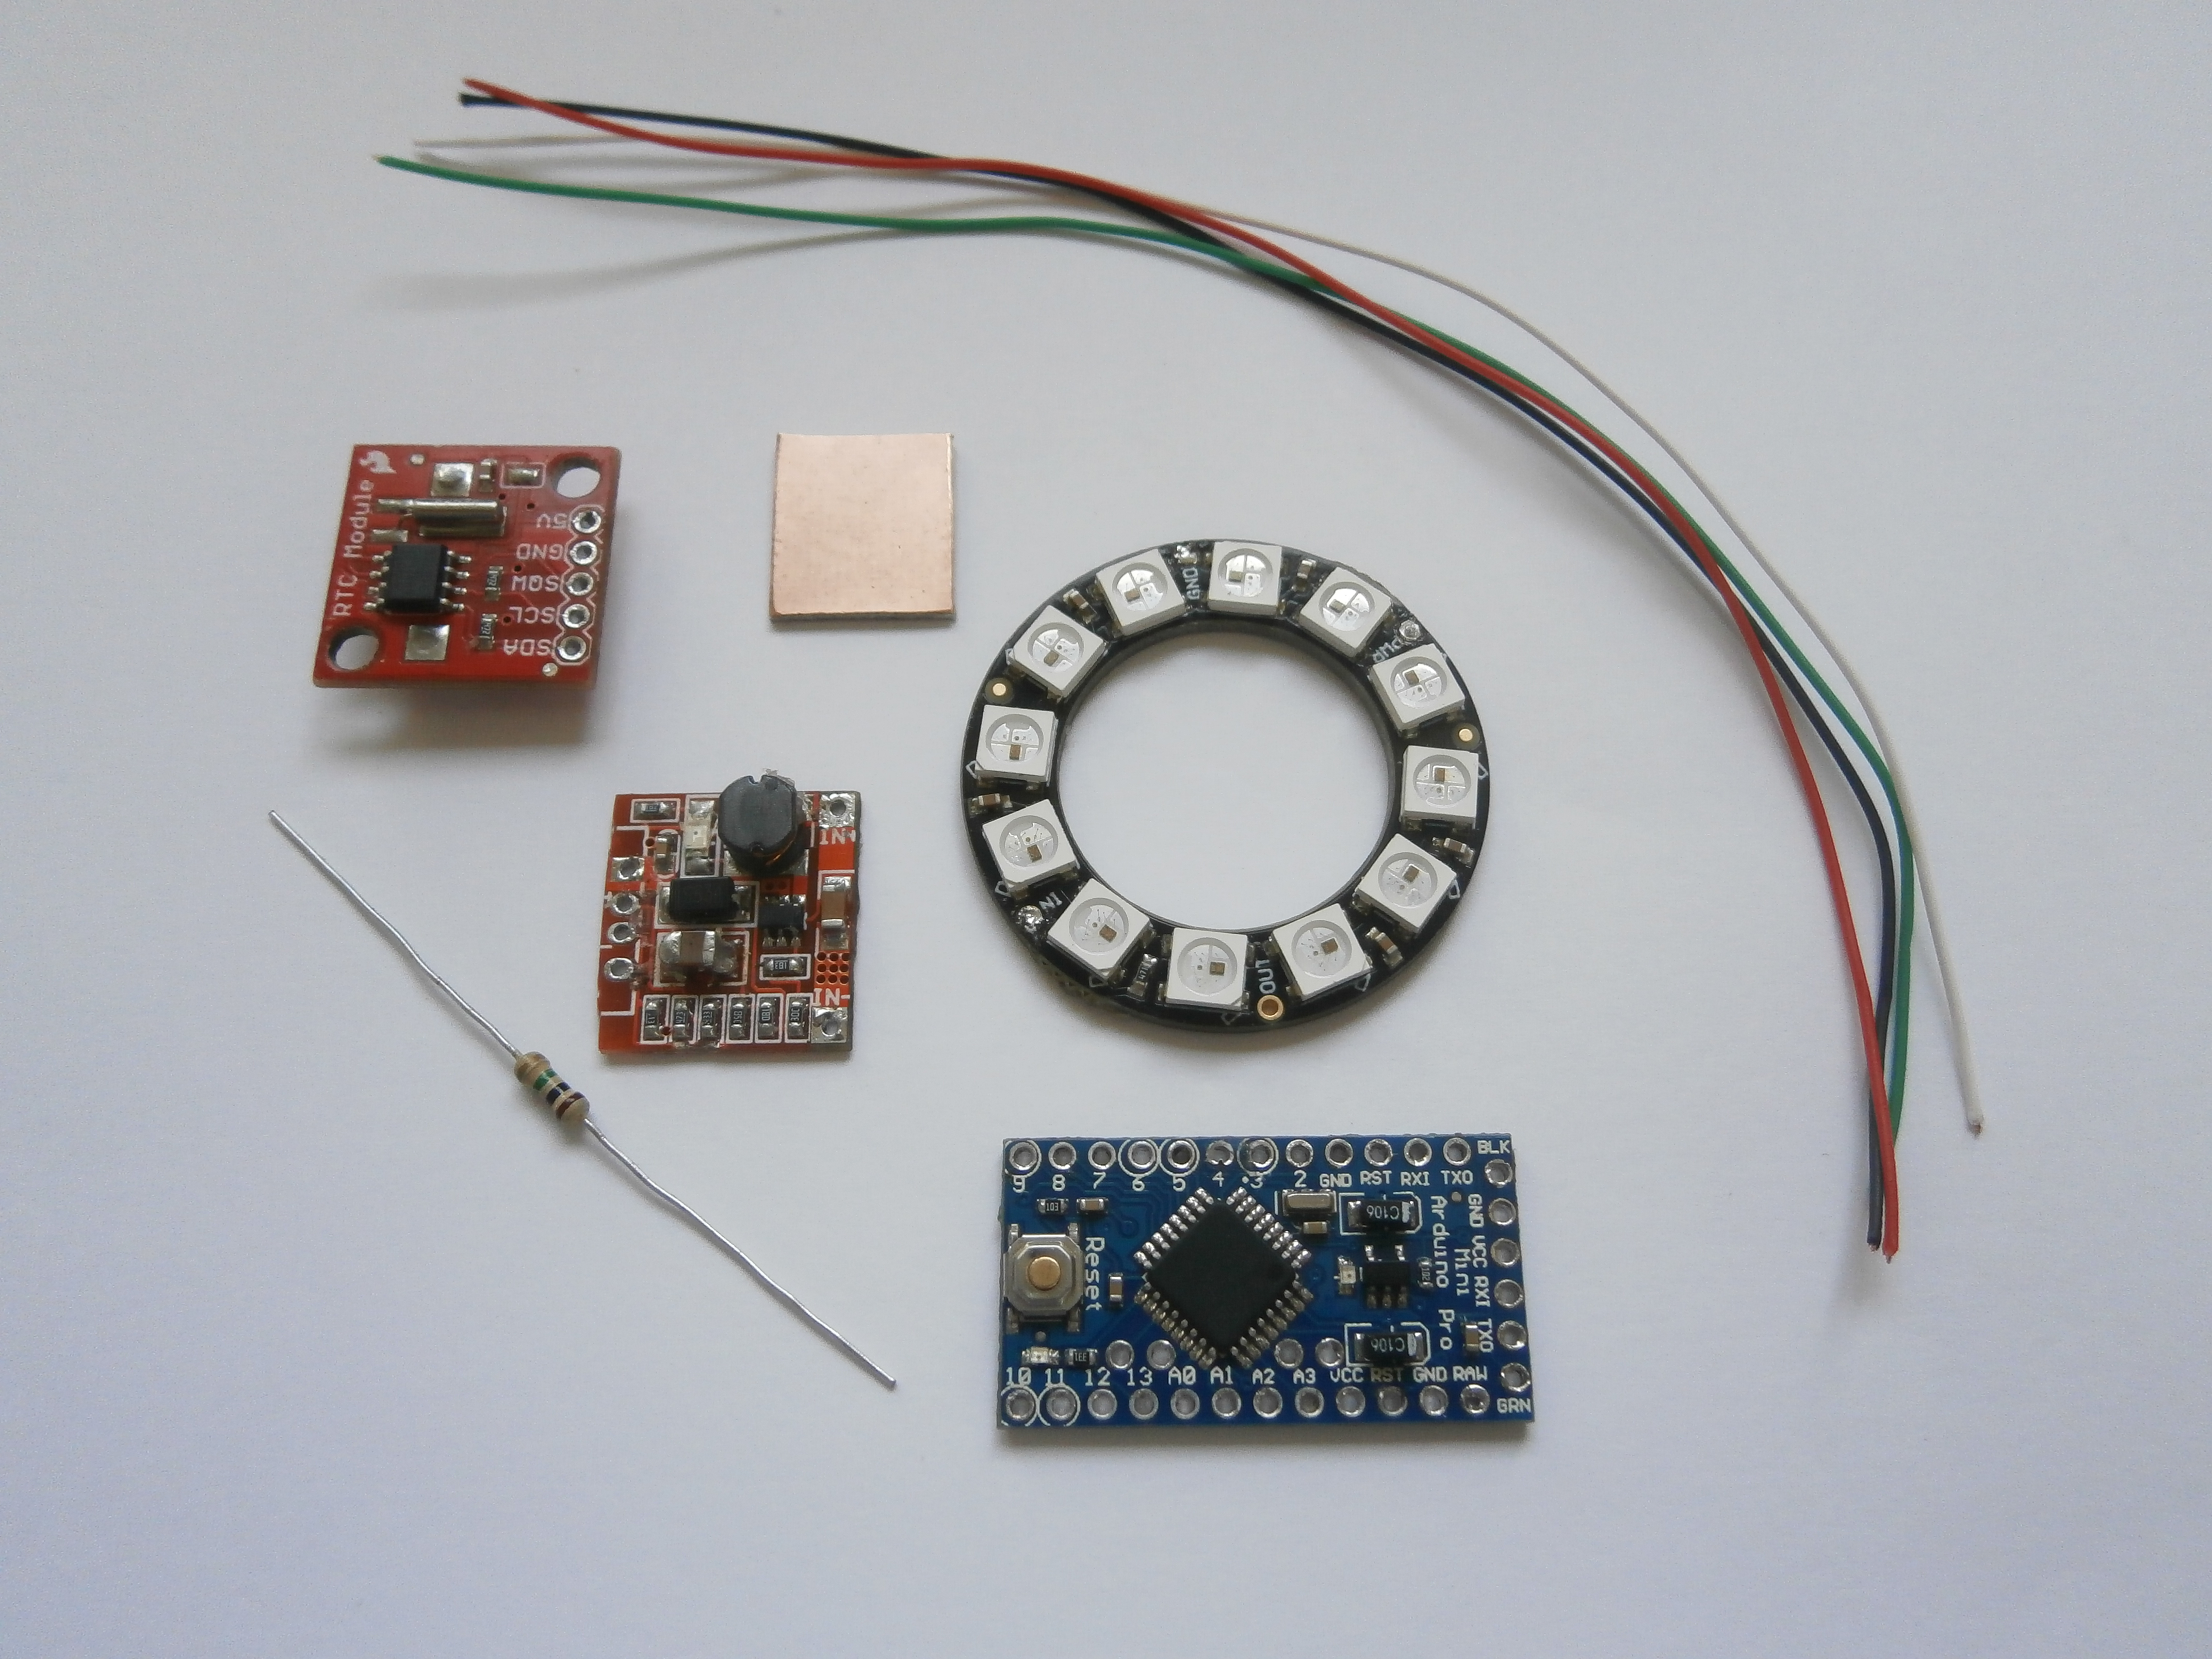 Picture of Parts, Materials and Tools for the Project